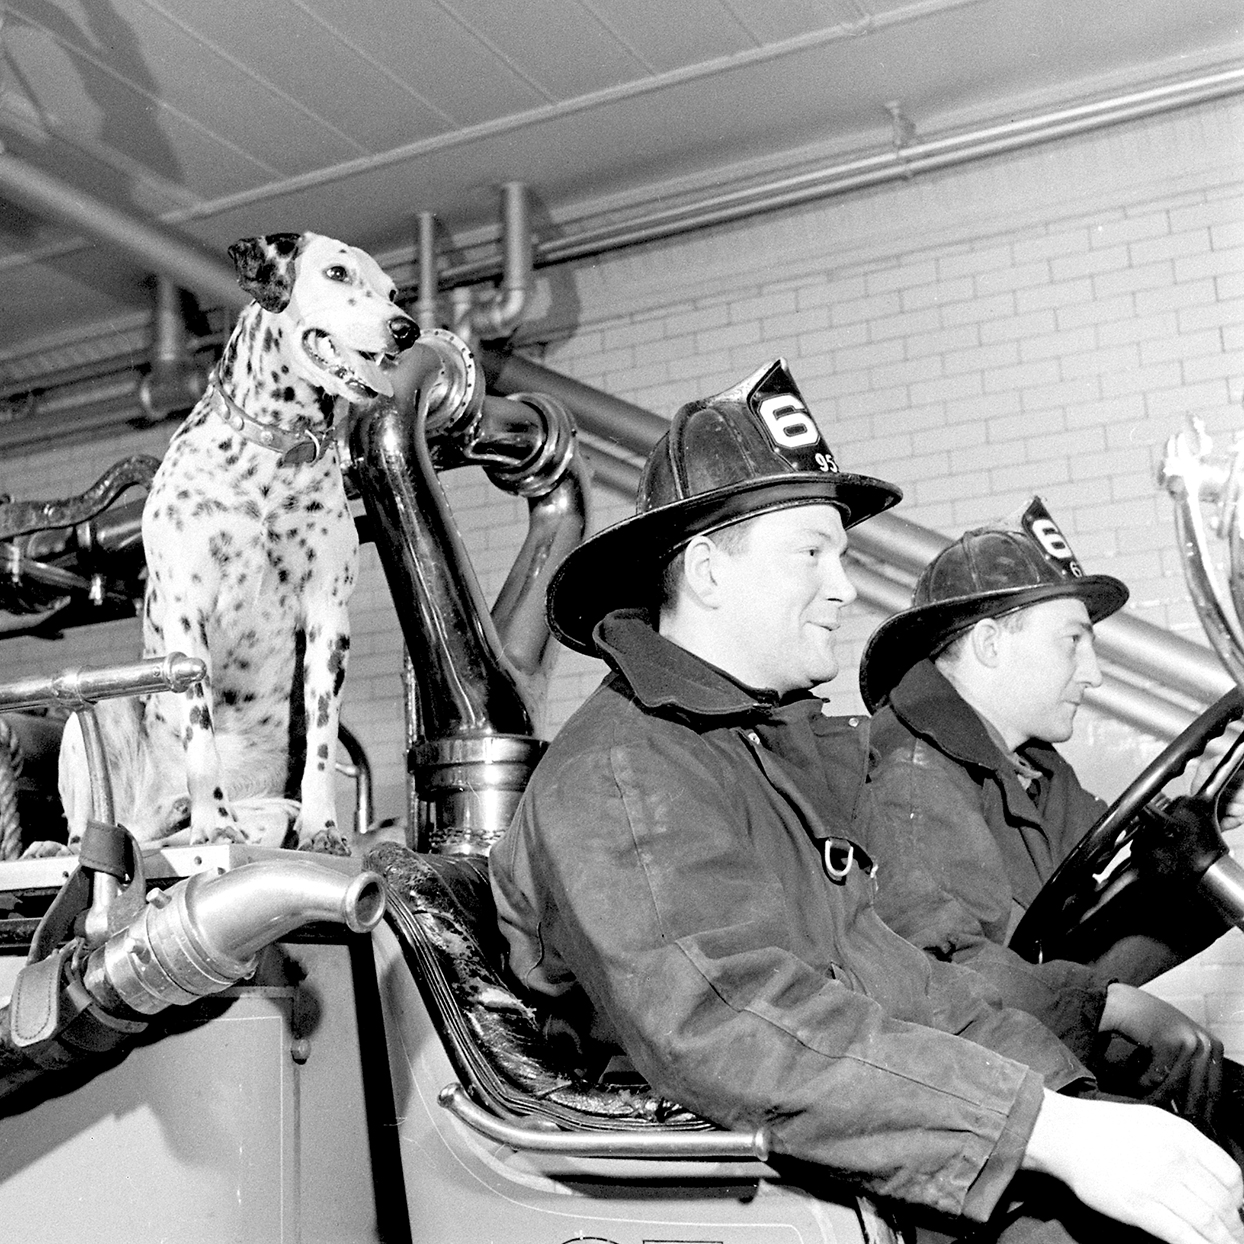 Black and white vintage image of Dalmatian on firetruck with two firefighters